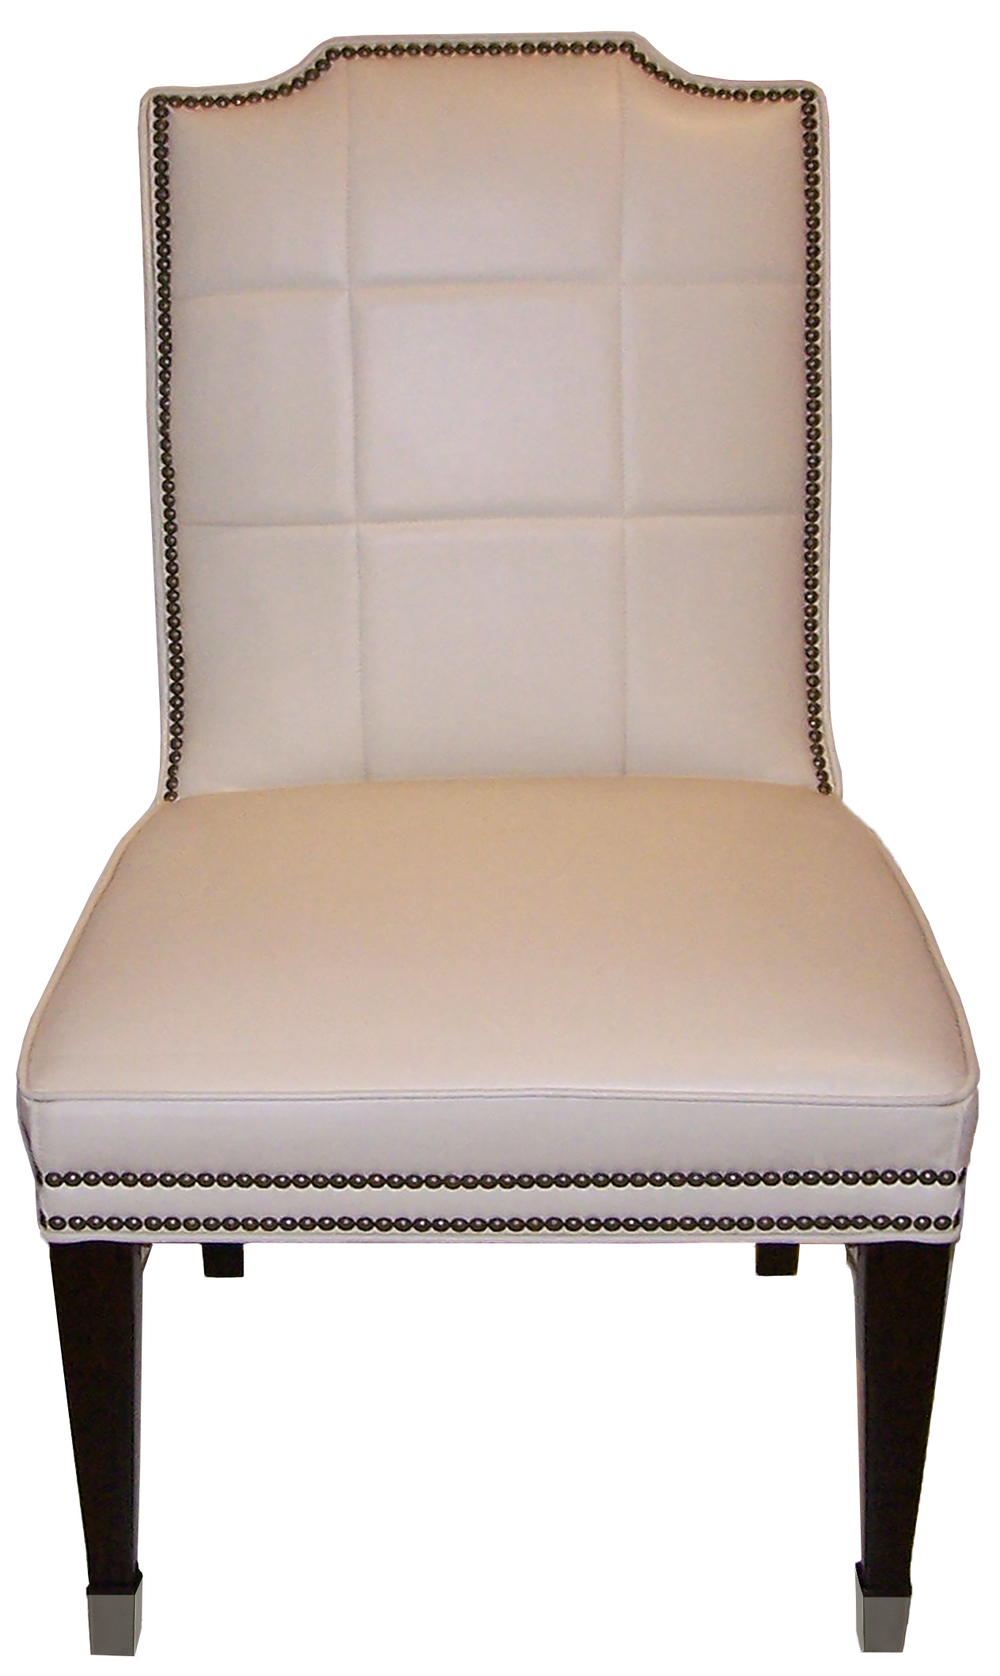 Vanguard Furniture - Travis Side Chair